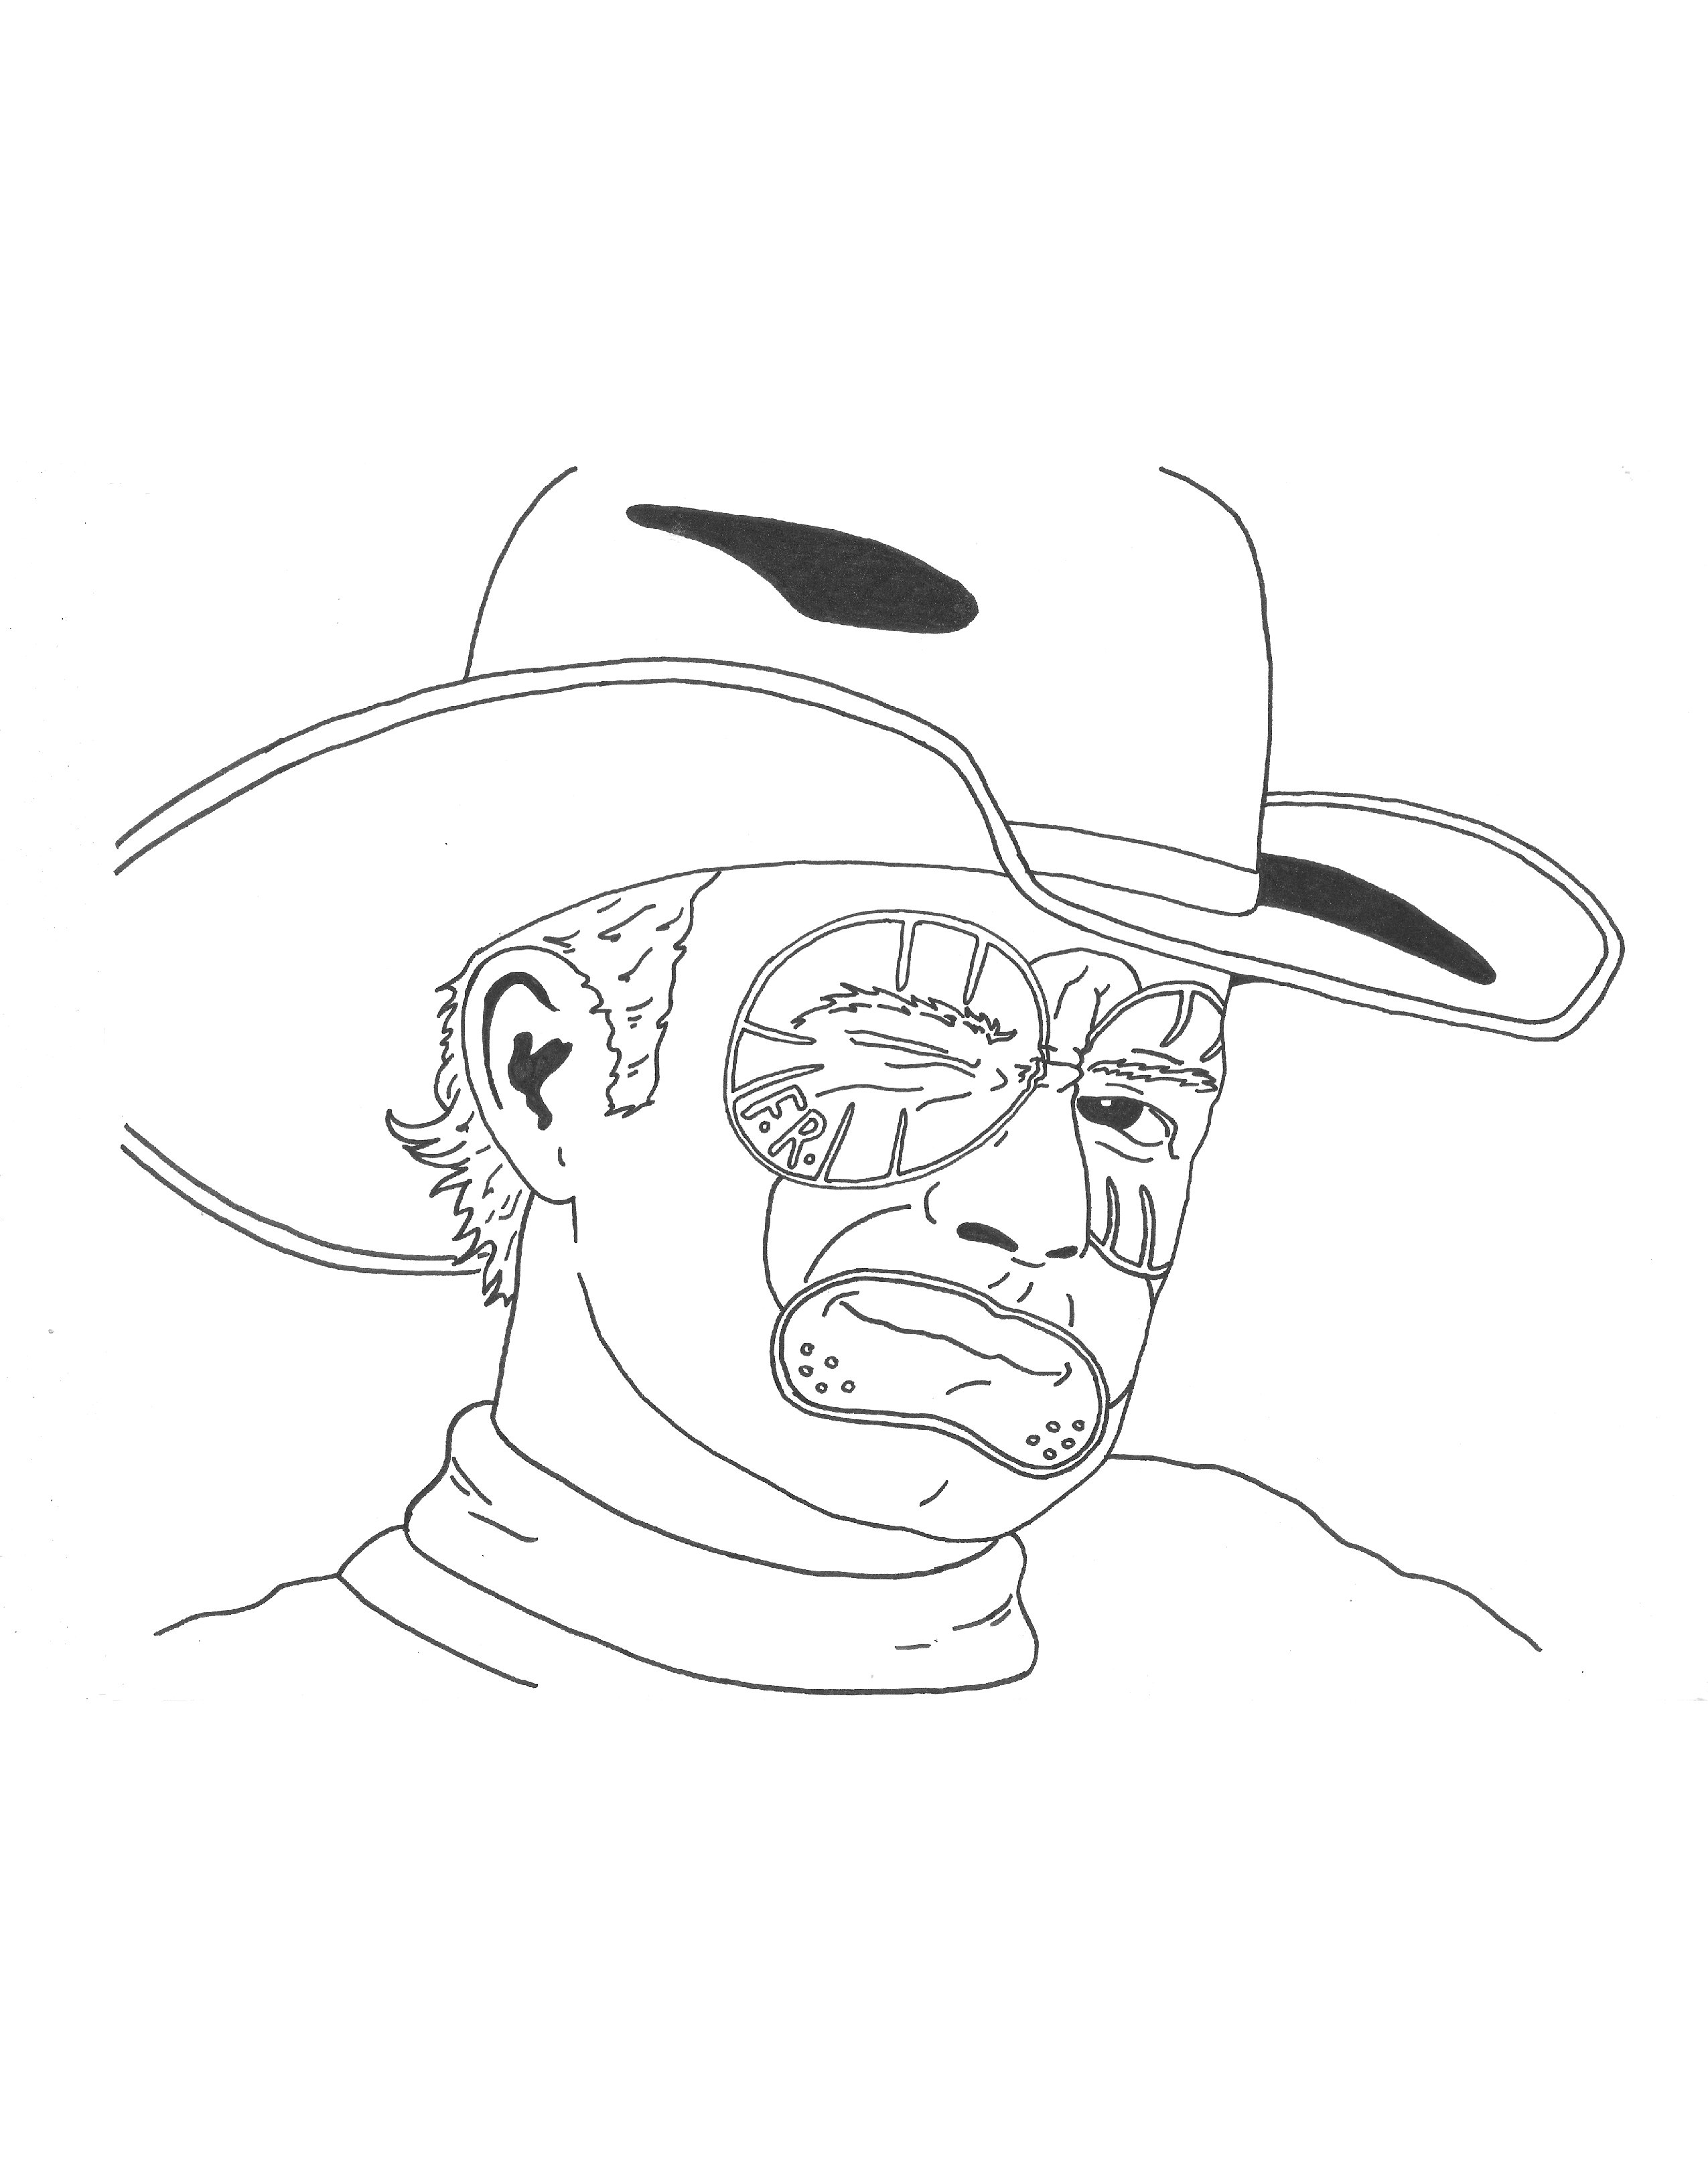 pbr bull coloring pages - photo#36